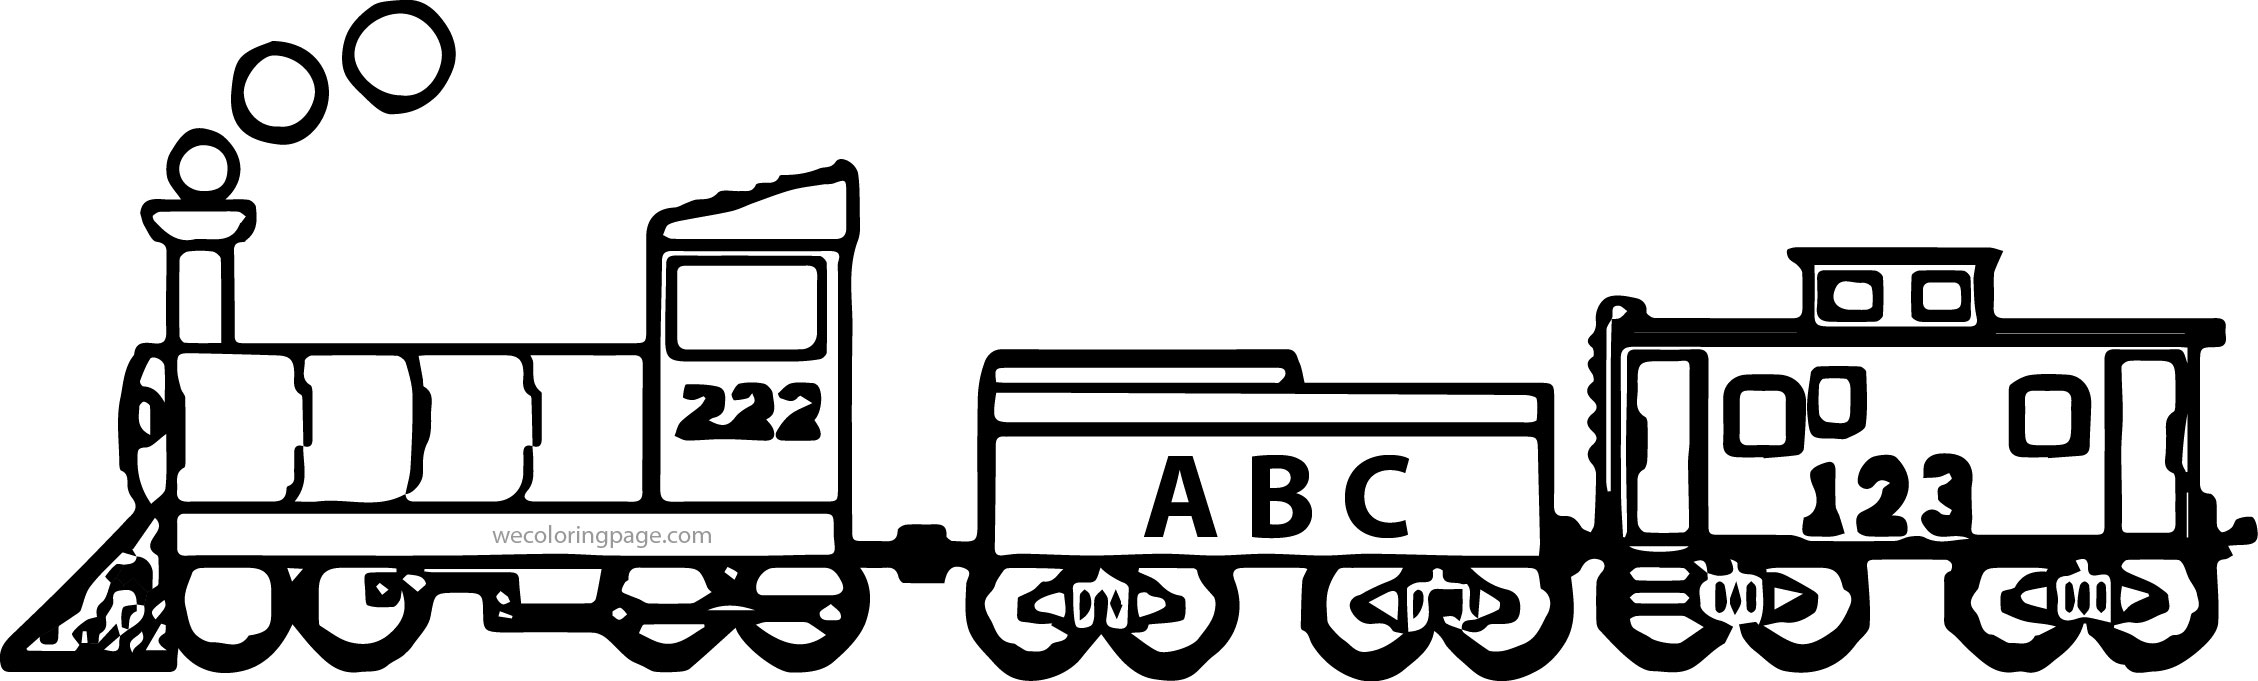 Abc Train Coloring Page